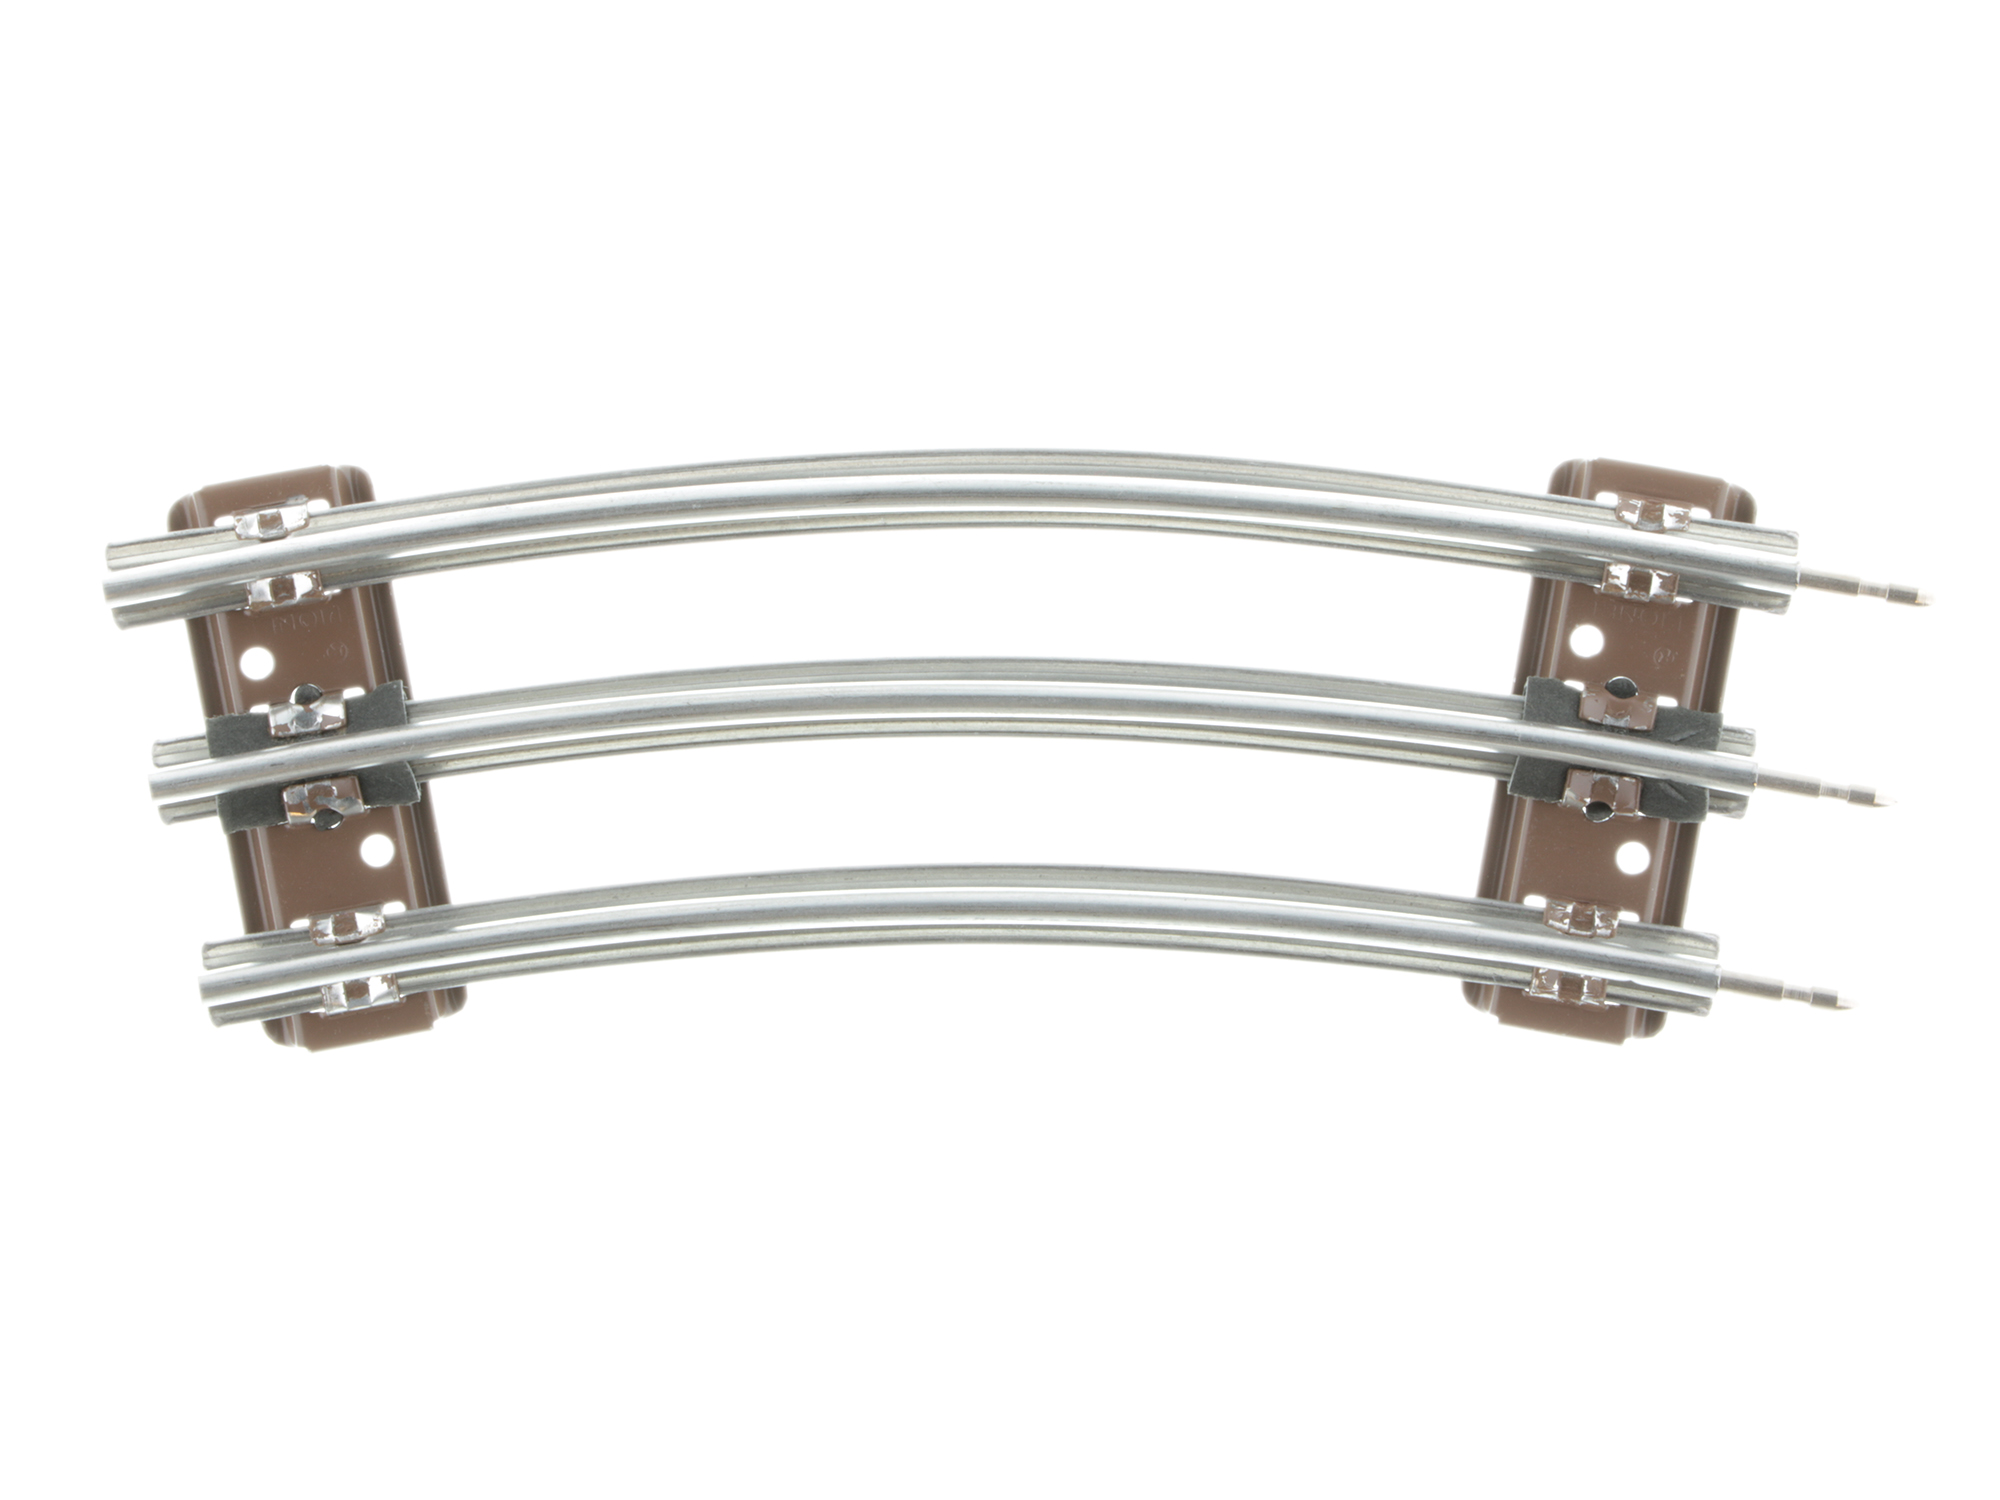 6-65014 1/2 CURVE TRACK SECTION (0-27 GAUGE)